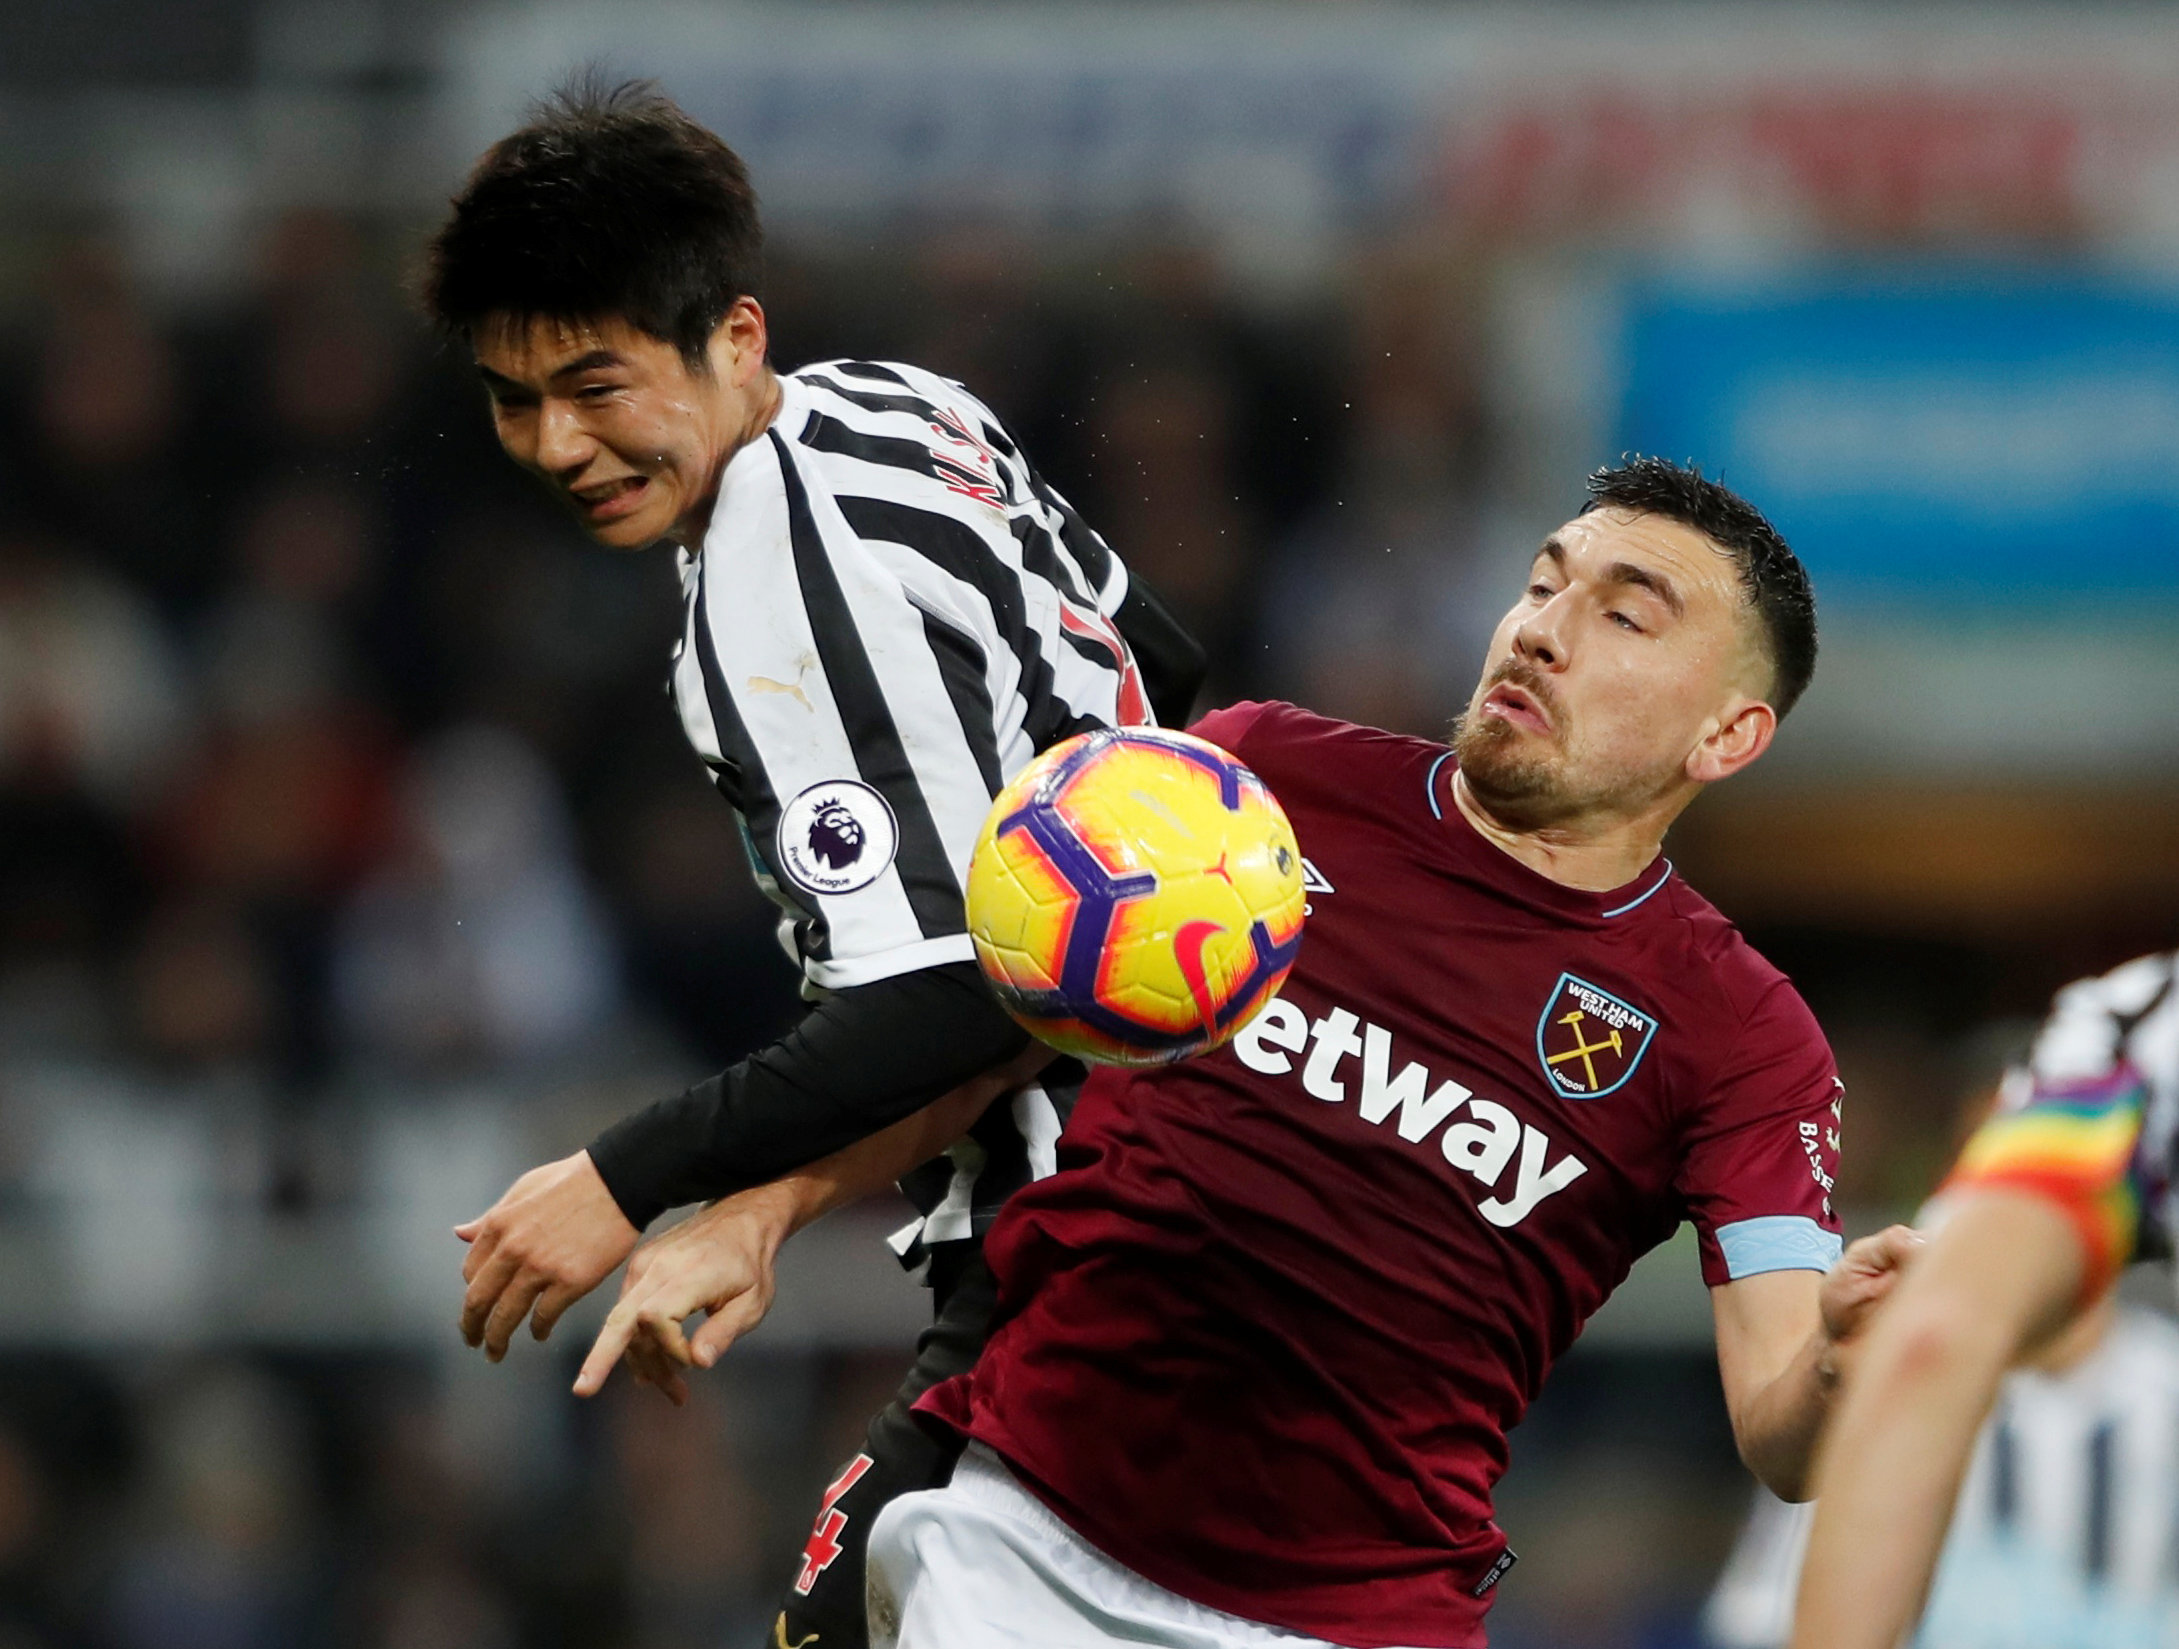 Robert Snodgrass in action in Saturday's victory at Newcastle. Picture: Action Images